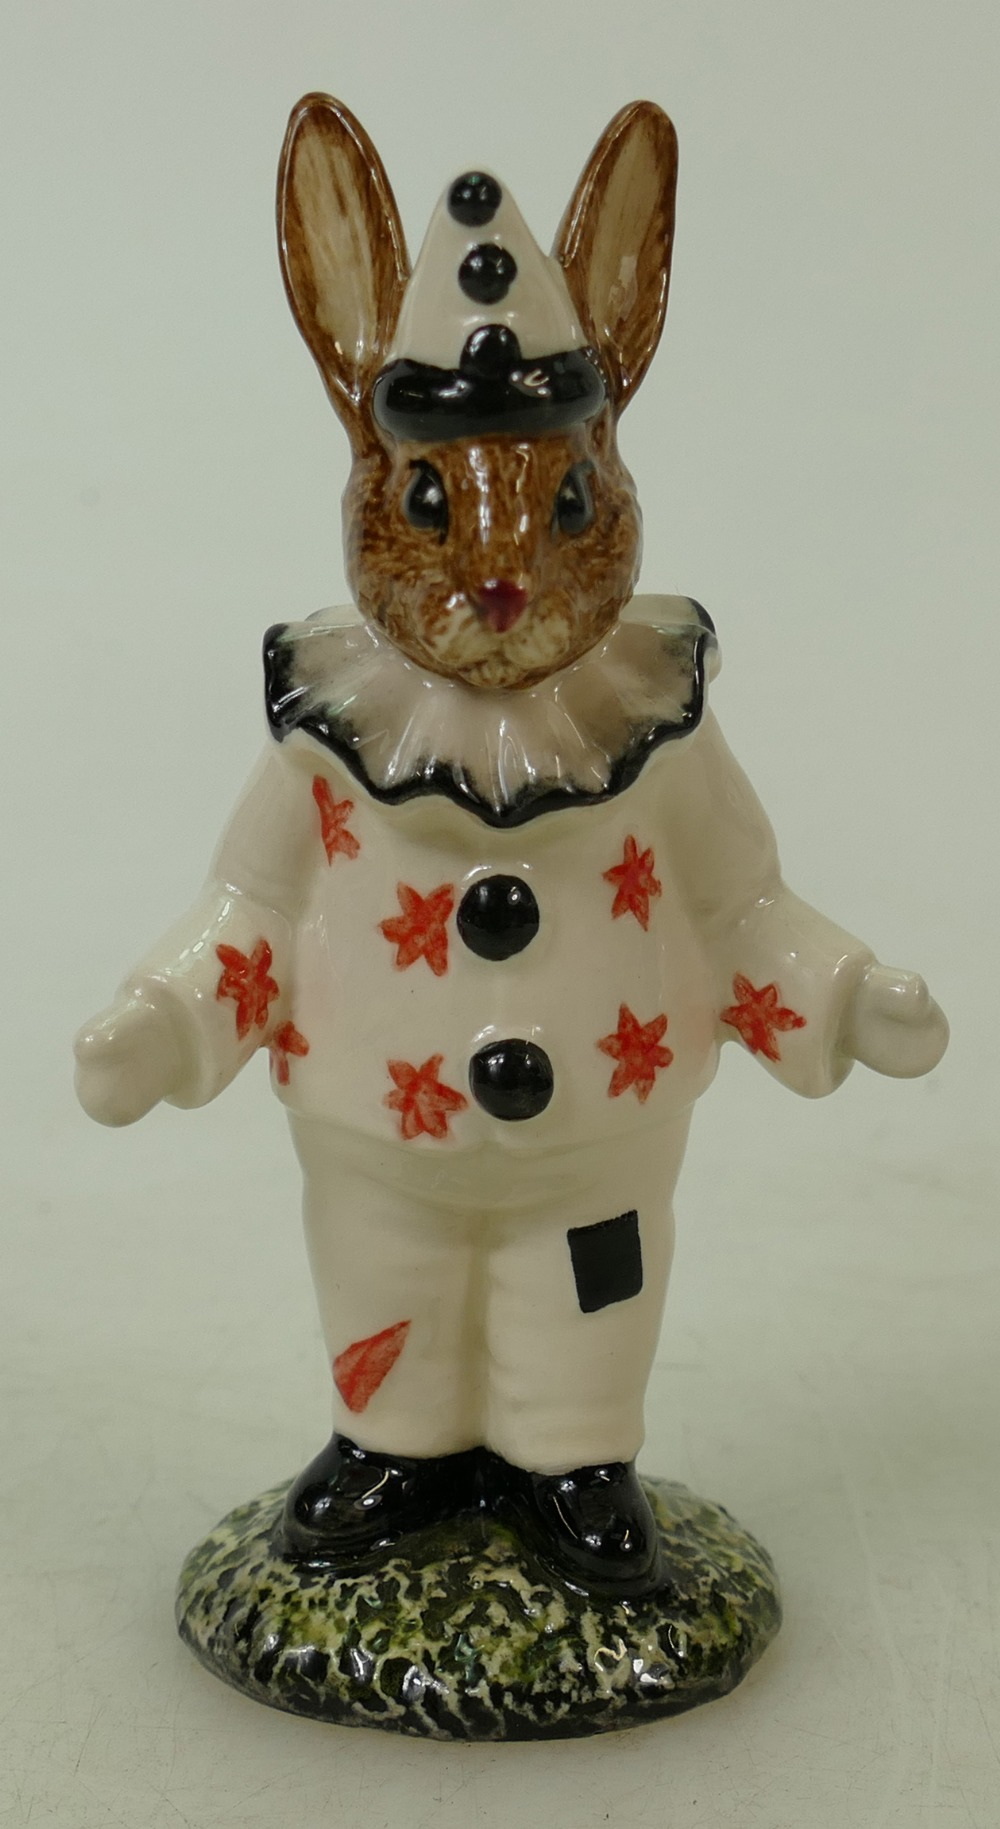 Lot 19 - Royal Doulton Bunnykins figure The Clown: Royal Doulton ref DB129 limited edition of 250.